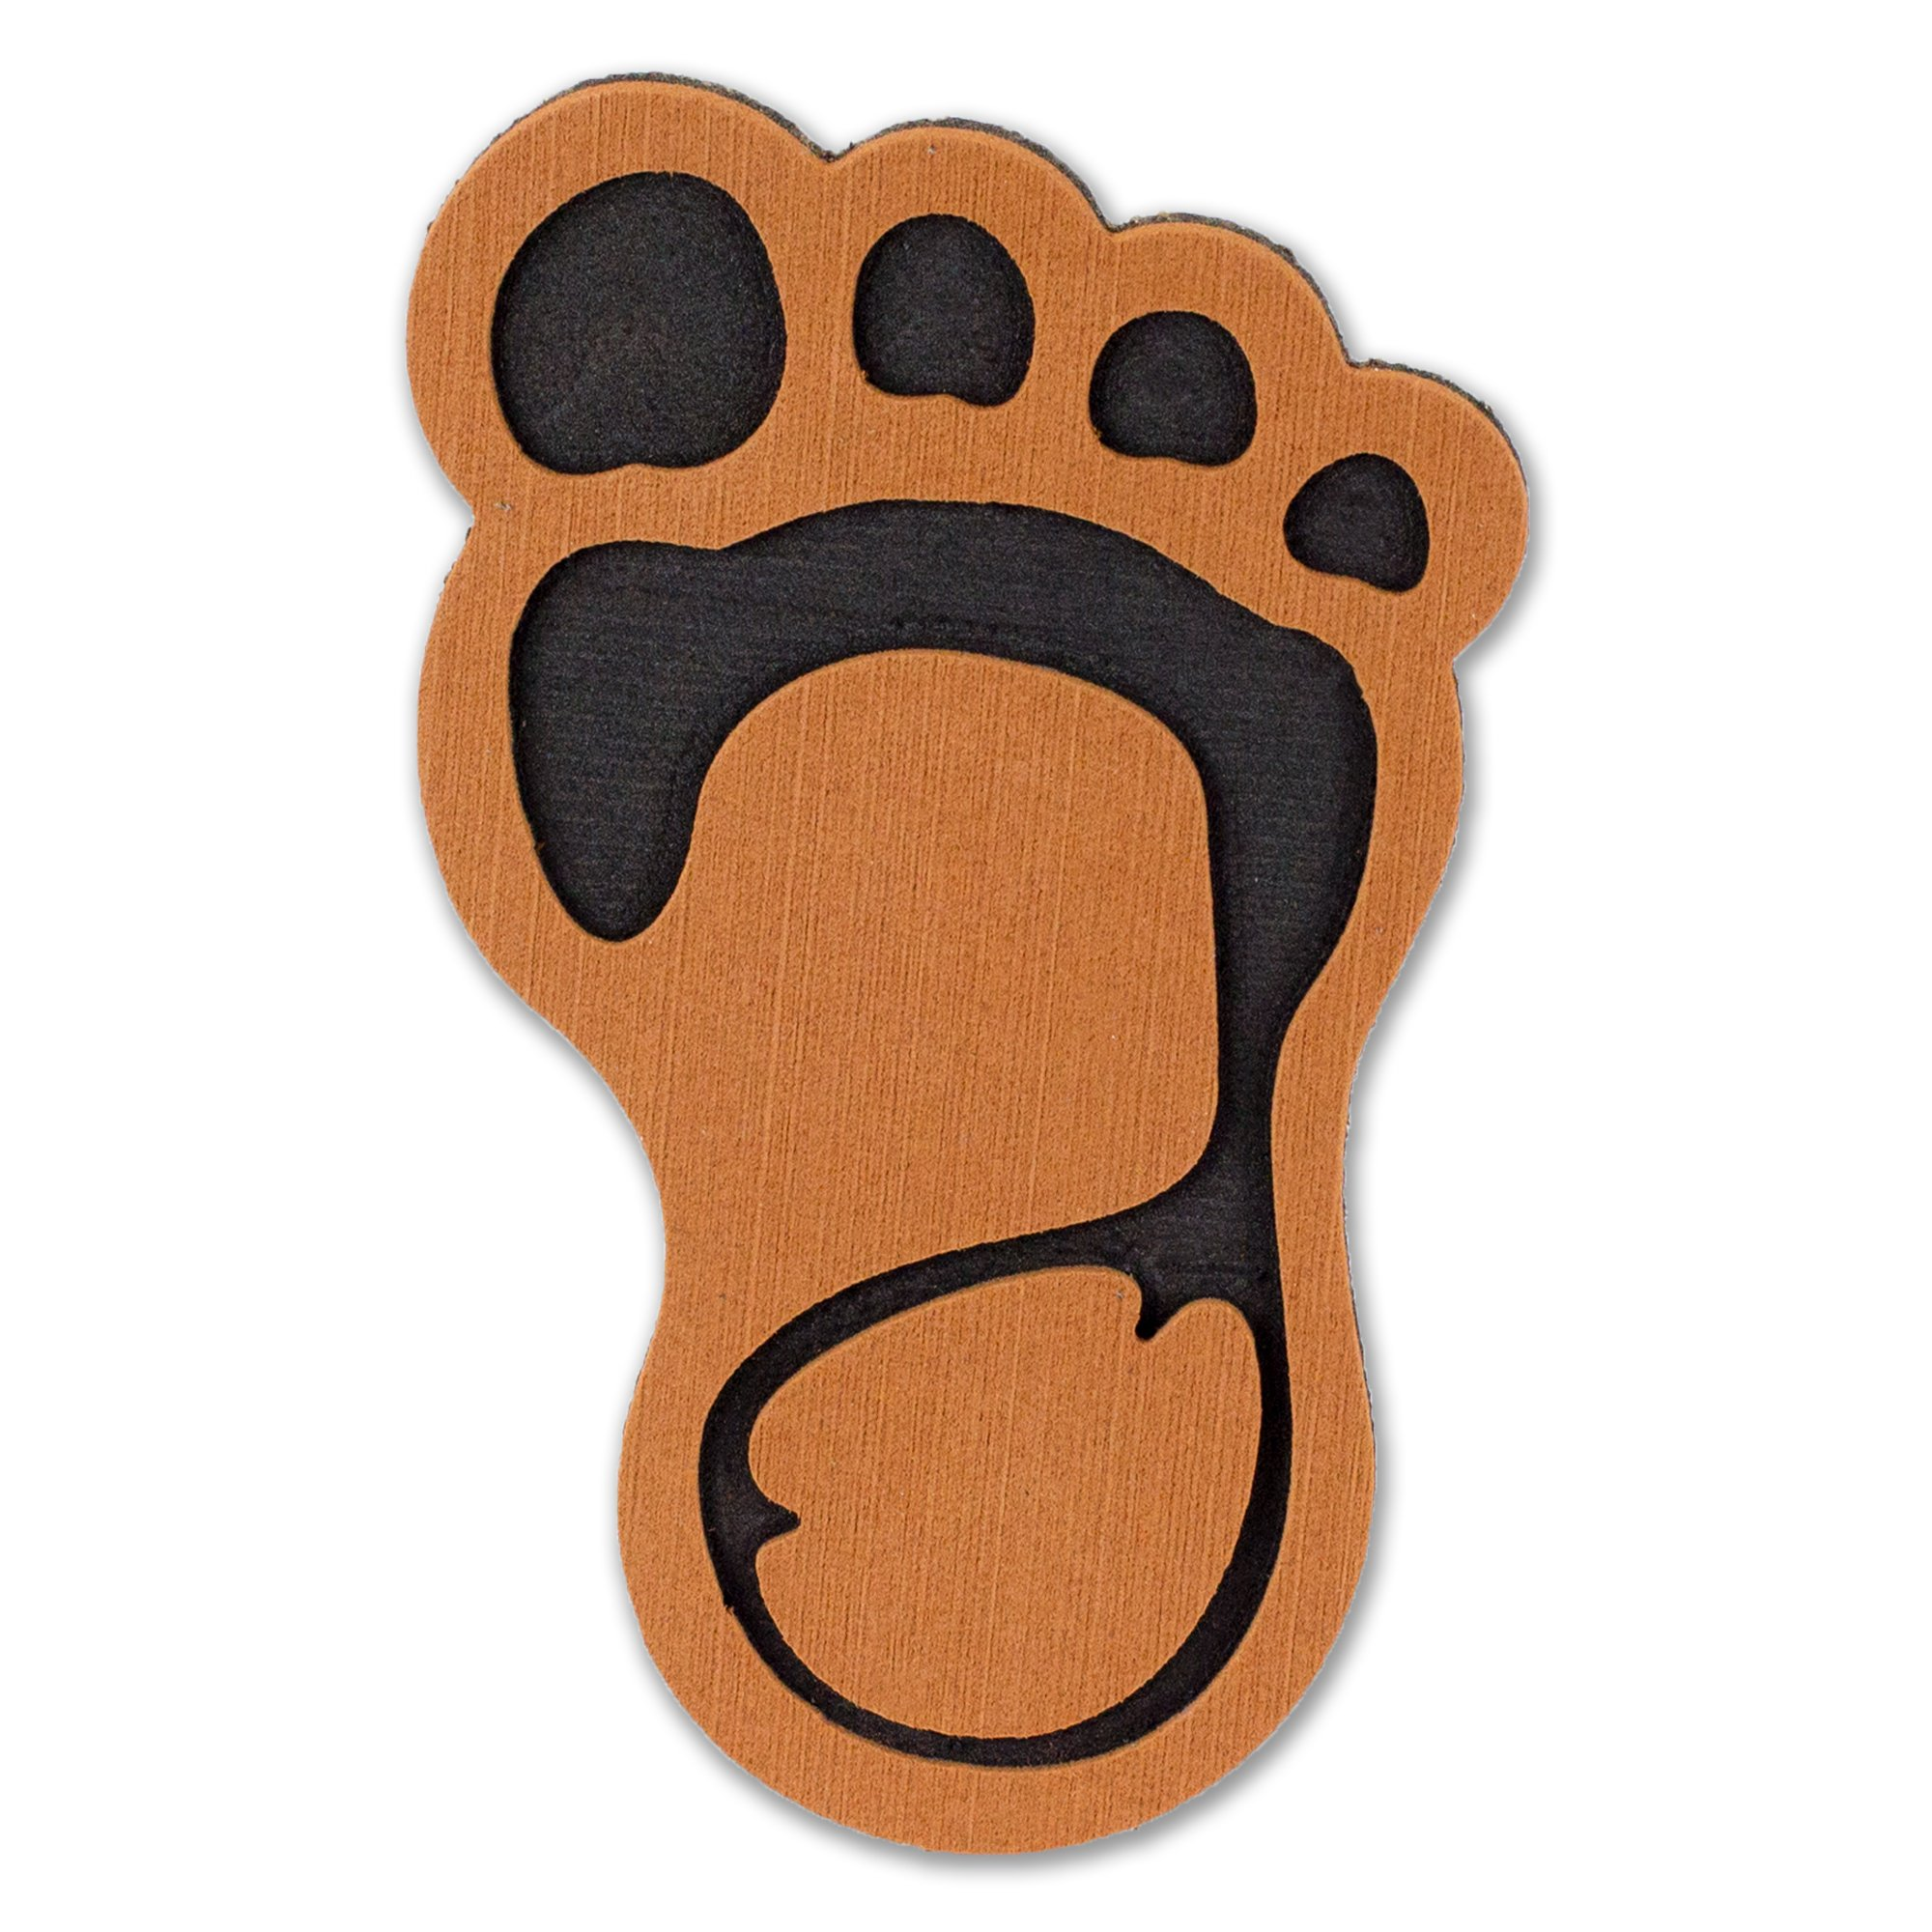 ToeJamR - Snowboard Stomp Pad - BIGFOOT - Brown by Toejamr